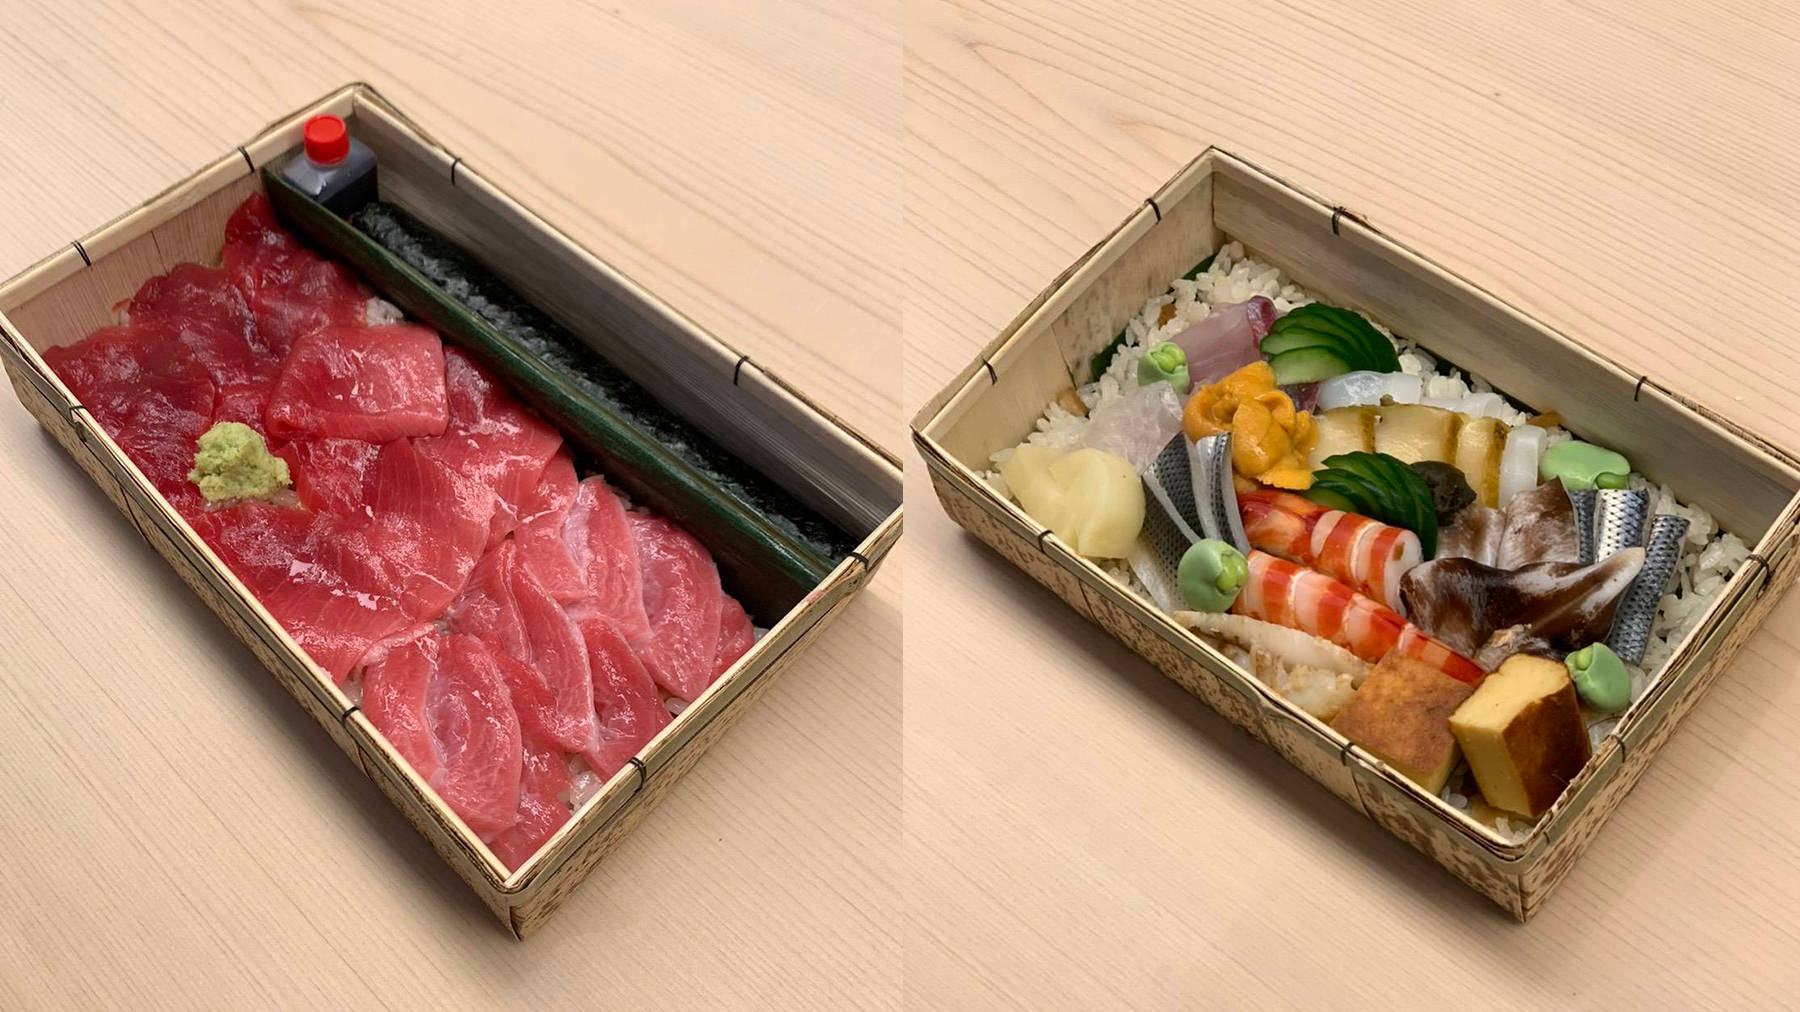 STAY HOME Kiyota (Takeaway)'s images1